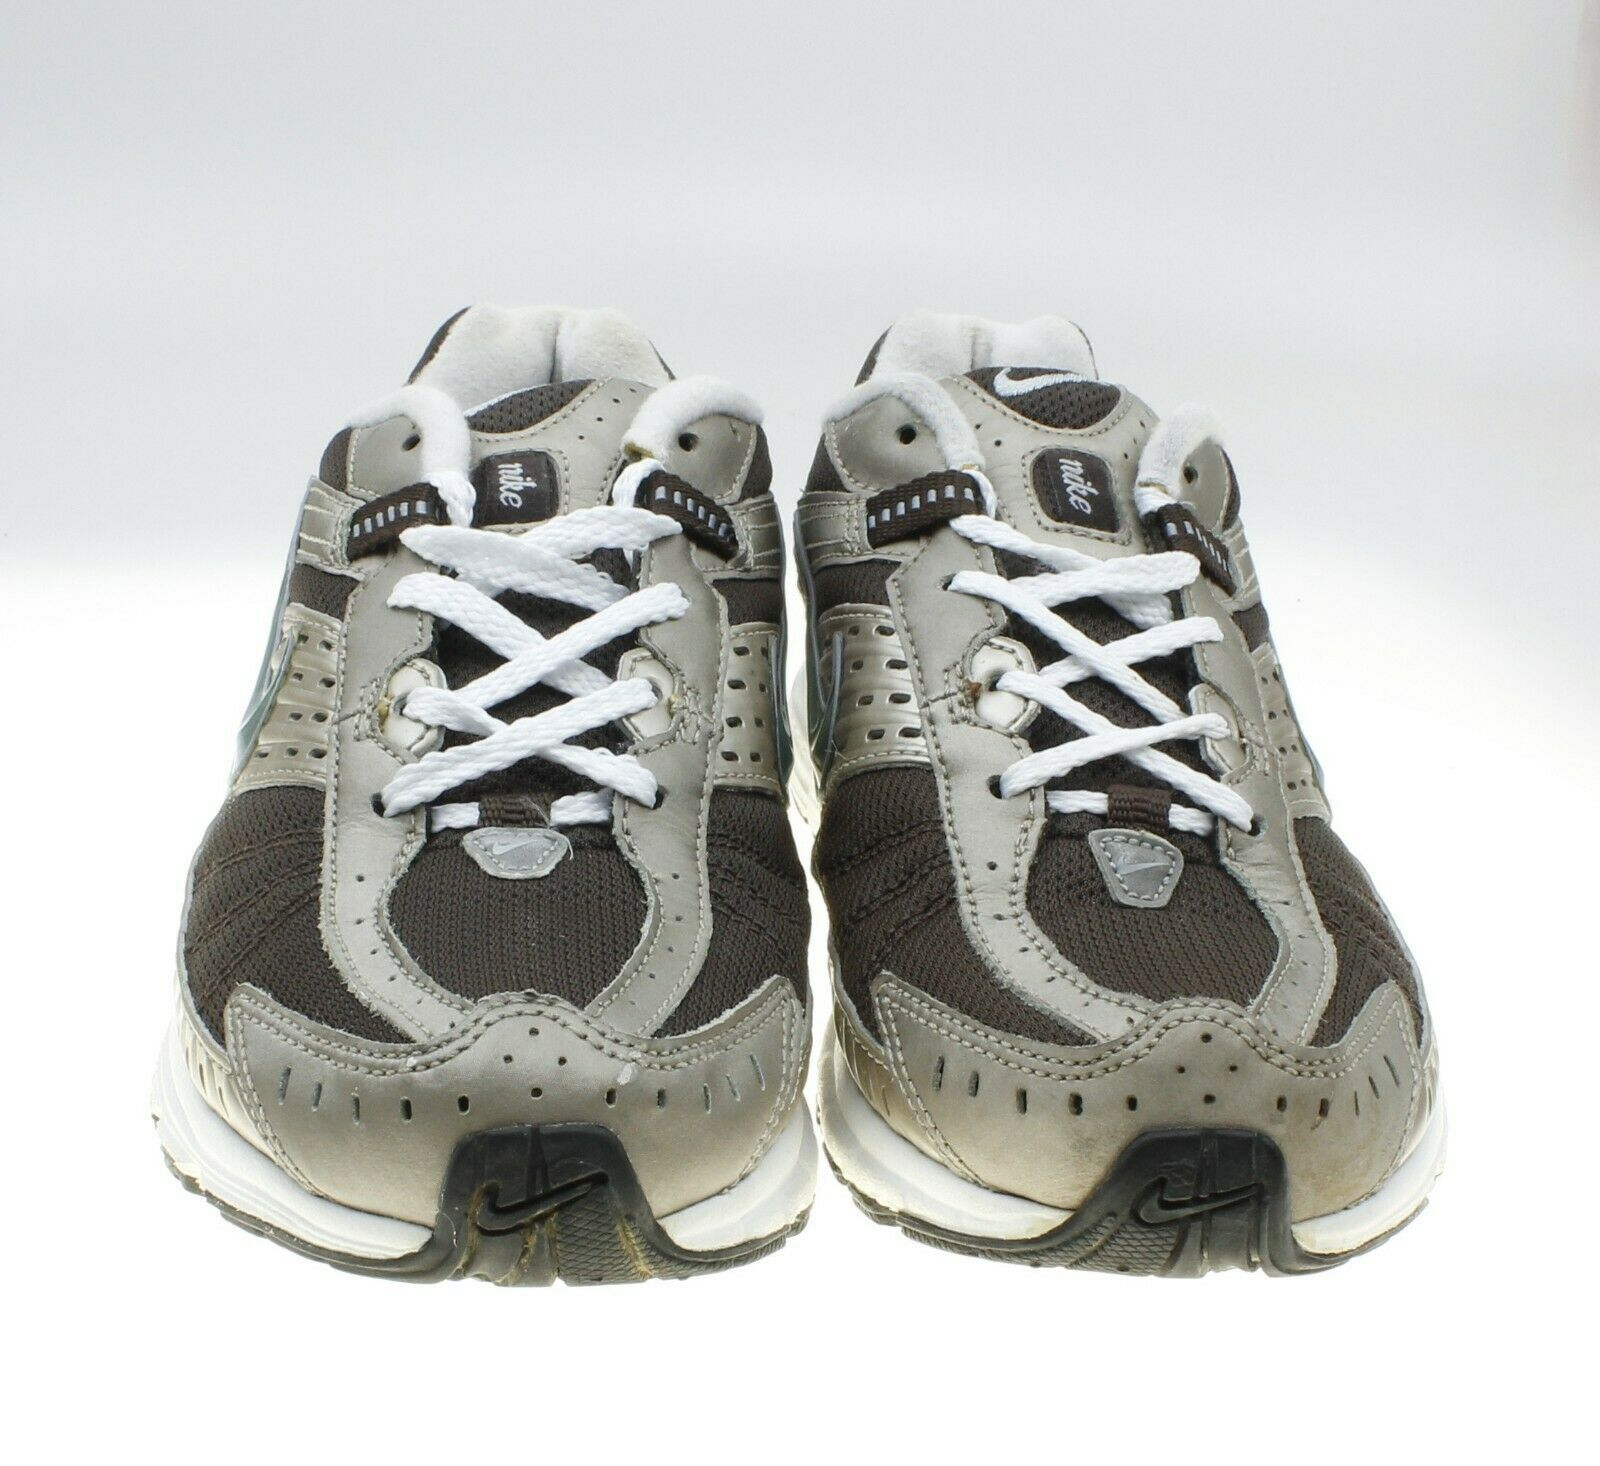 Nike Dart IV Womens Brown Athletic Running Shoes Sneakers Size 8.5